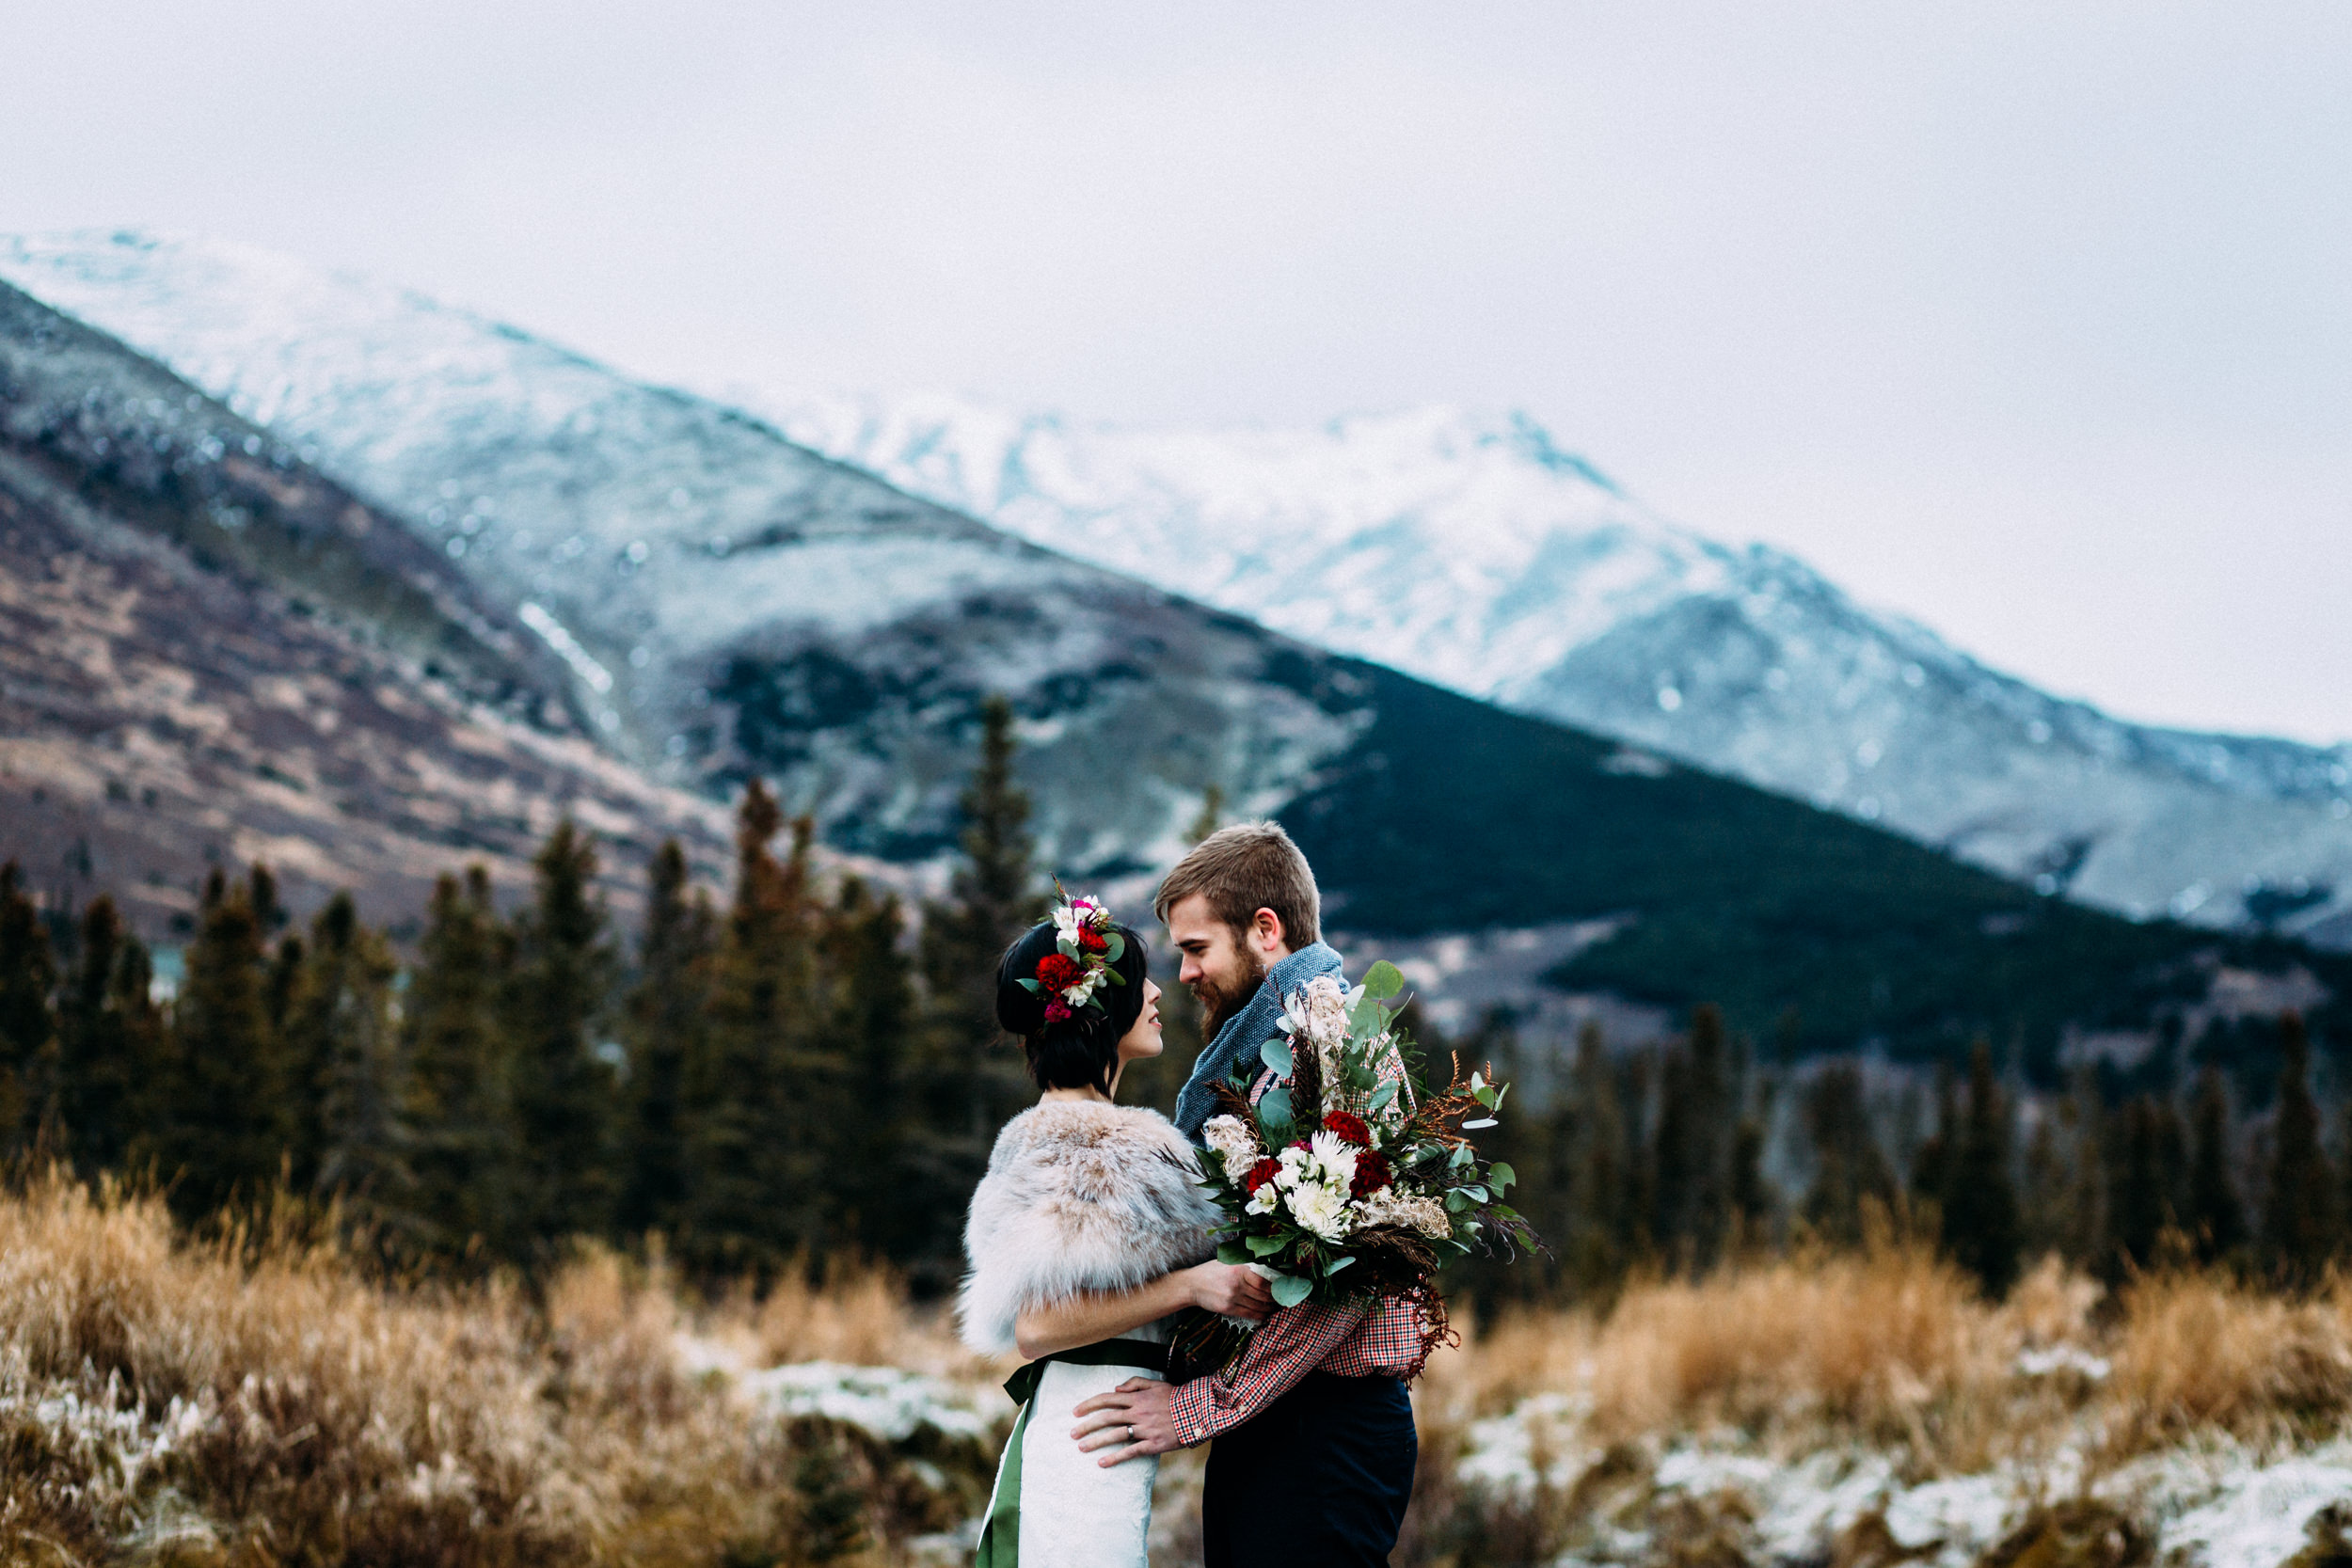 Couple eloping in Alaskan mountains